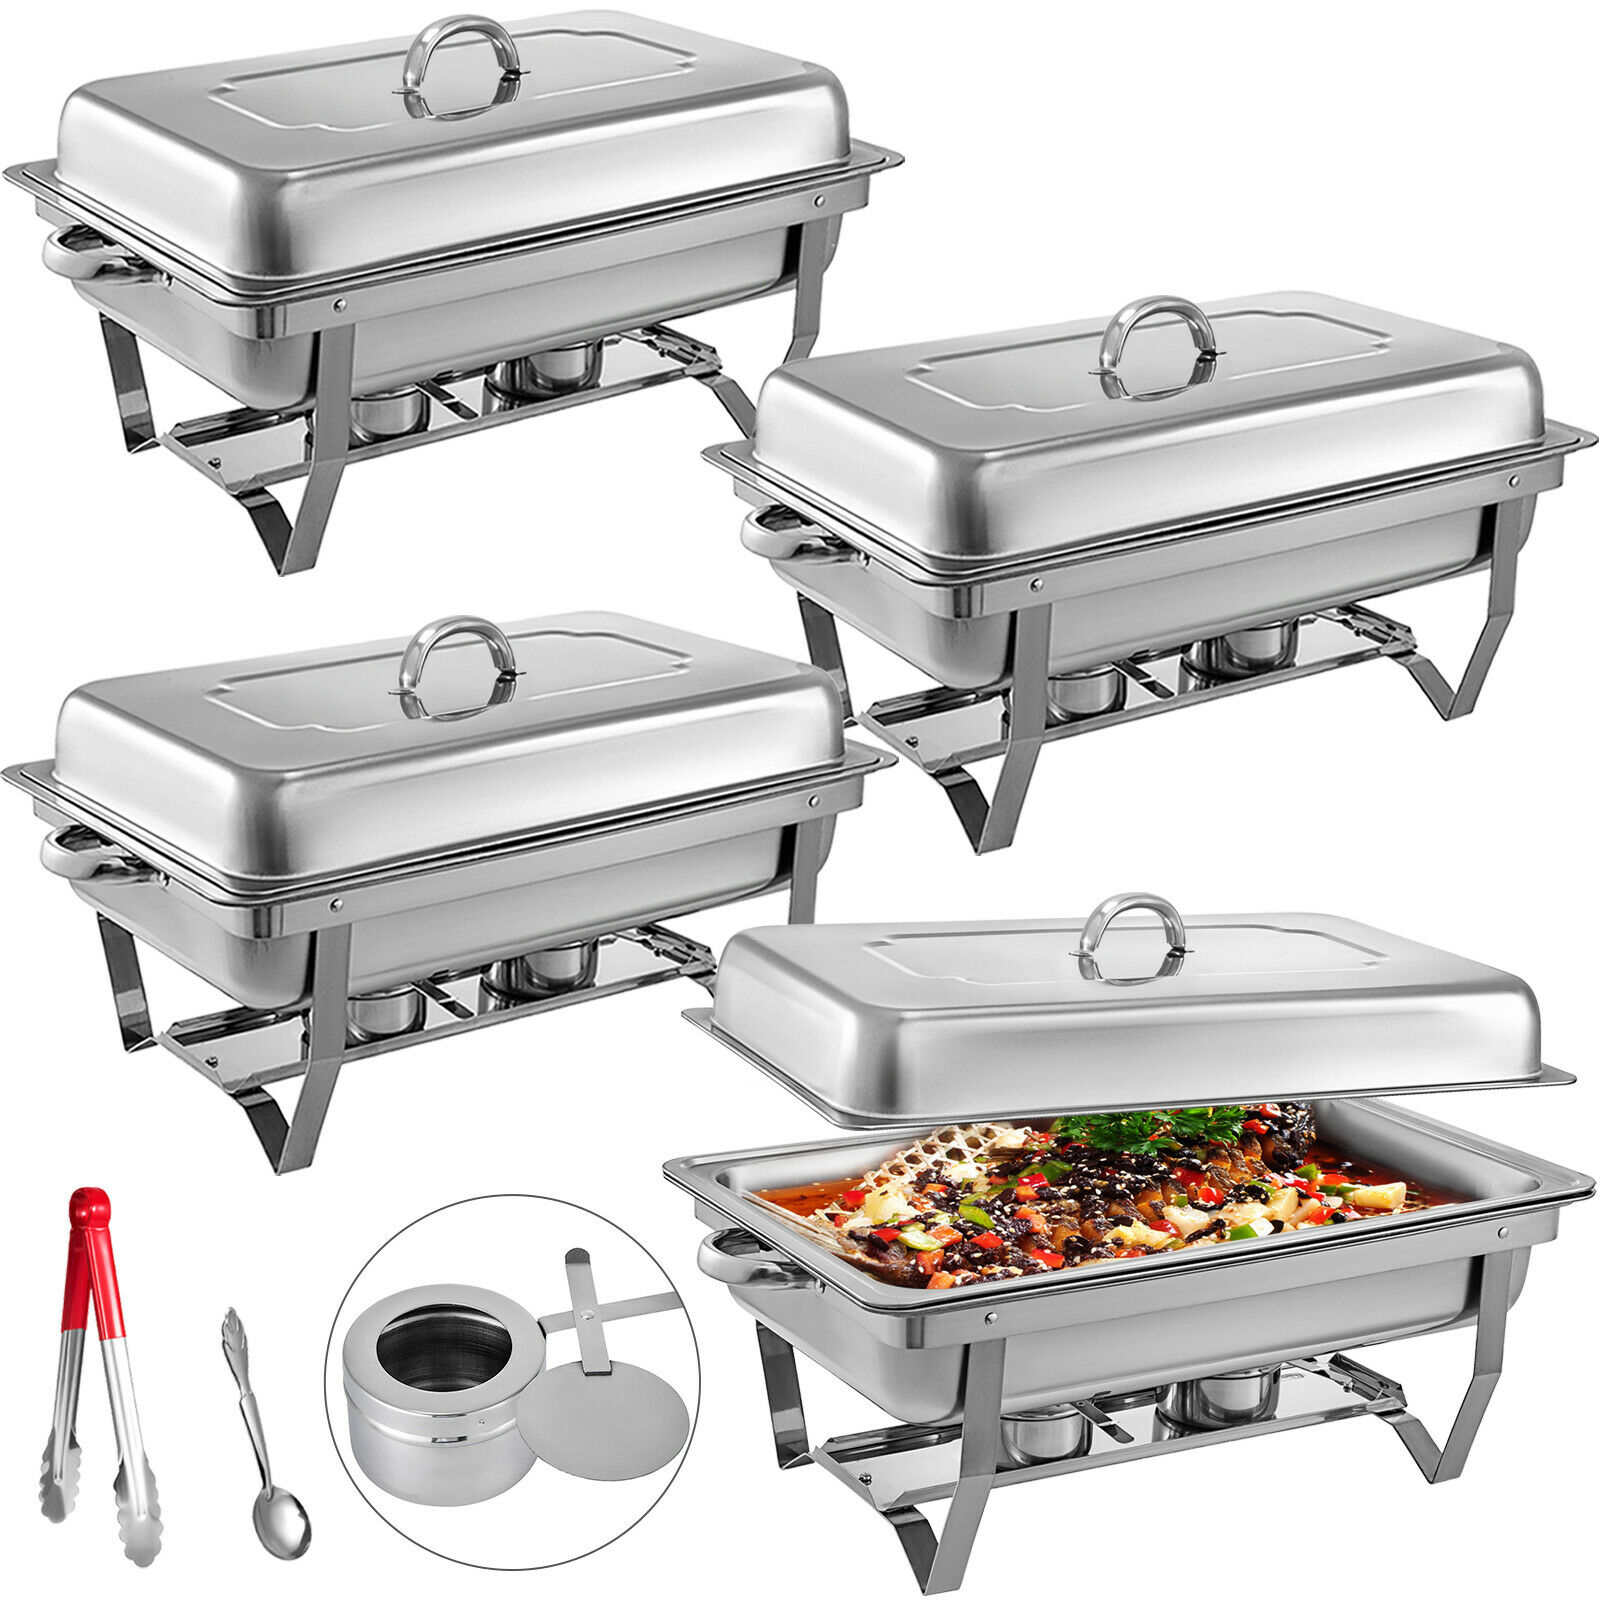 Food Chafing Dishes 4 Quart Stainless Steel Full Size Chafer Buffet Set Water Pan Fuel Holder And Lid For Catering Warmer